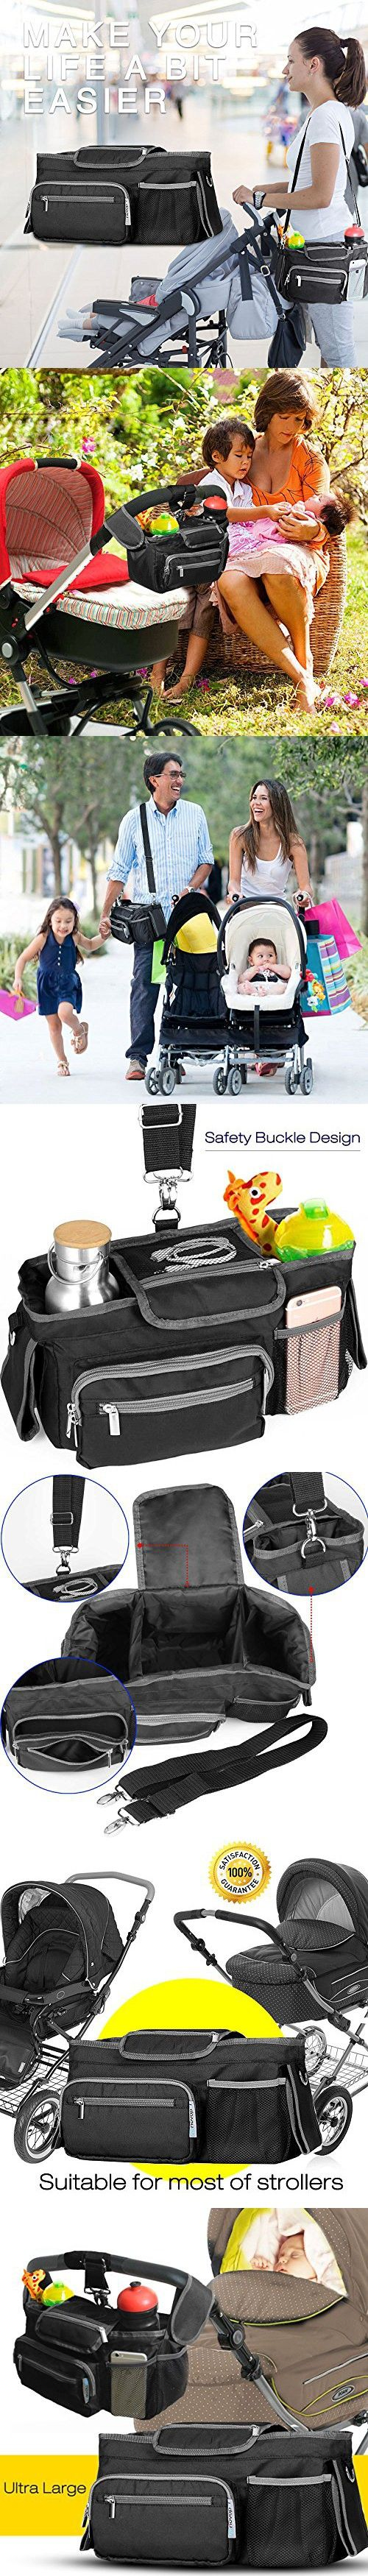 Ultra Large Universal Stroller Organizer Bag, Premium Stroller Diaper Bag with Carrying Strap ,Fitting Double Stroller, Umbrella Stroller and Jogging Stroller, The Perfect Baby Shower Gift